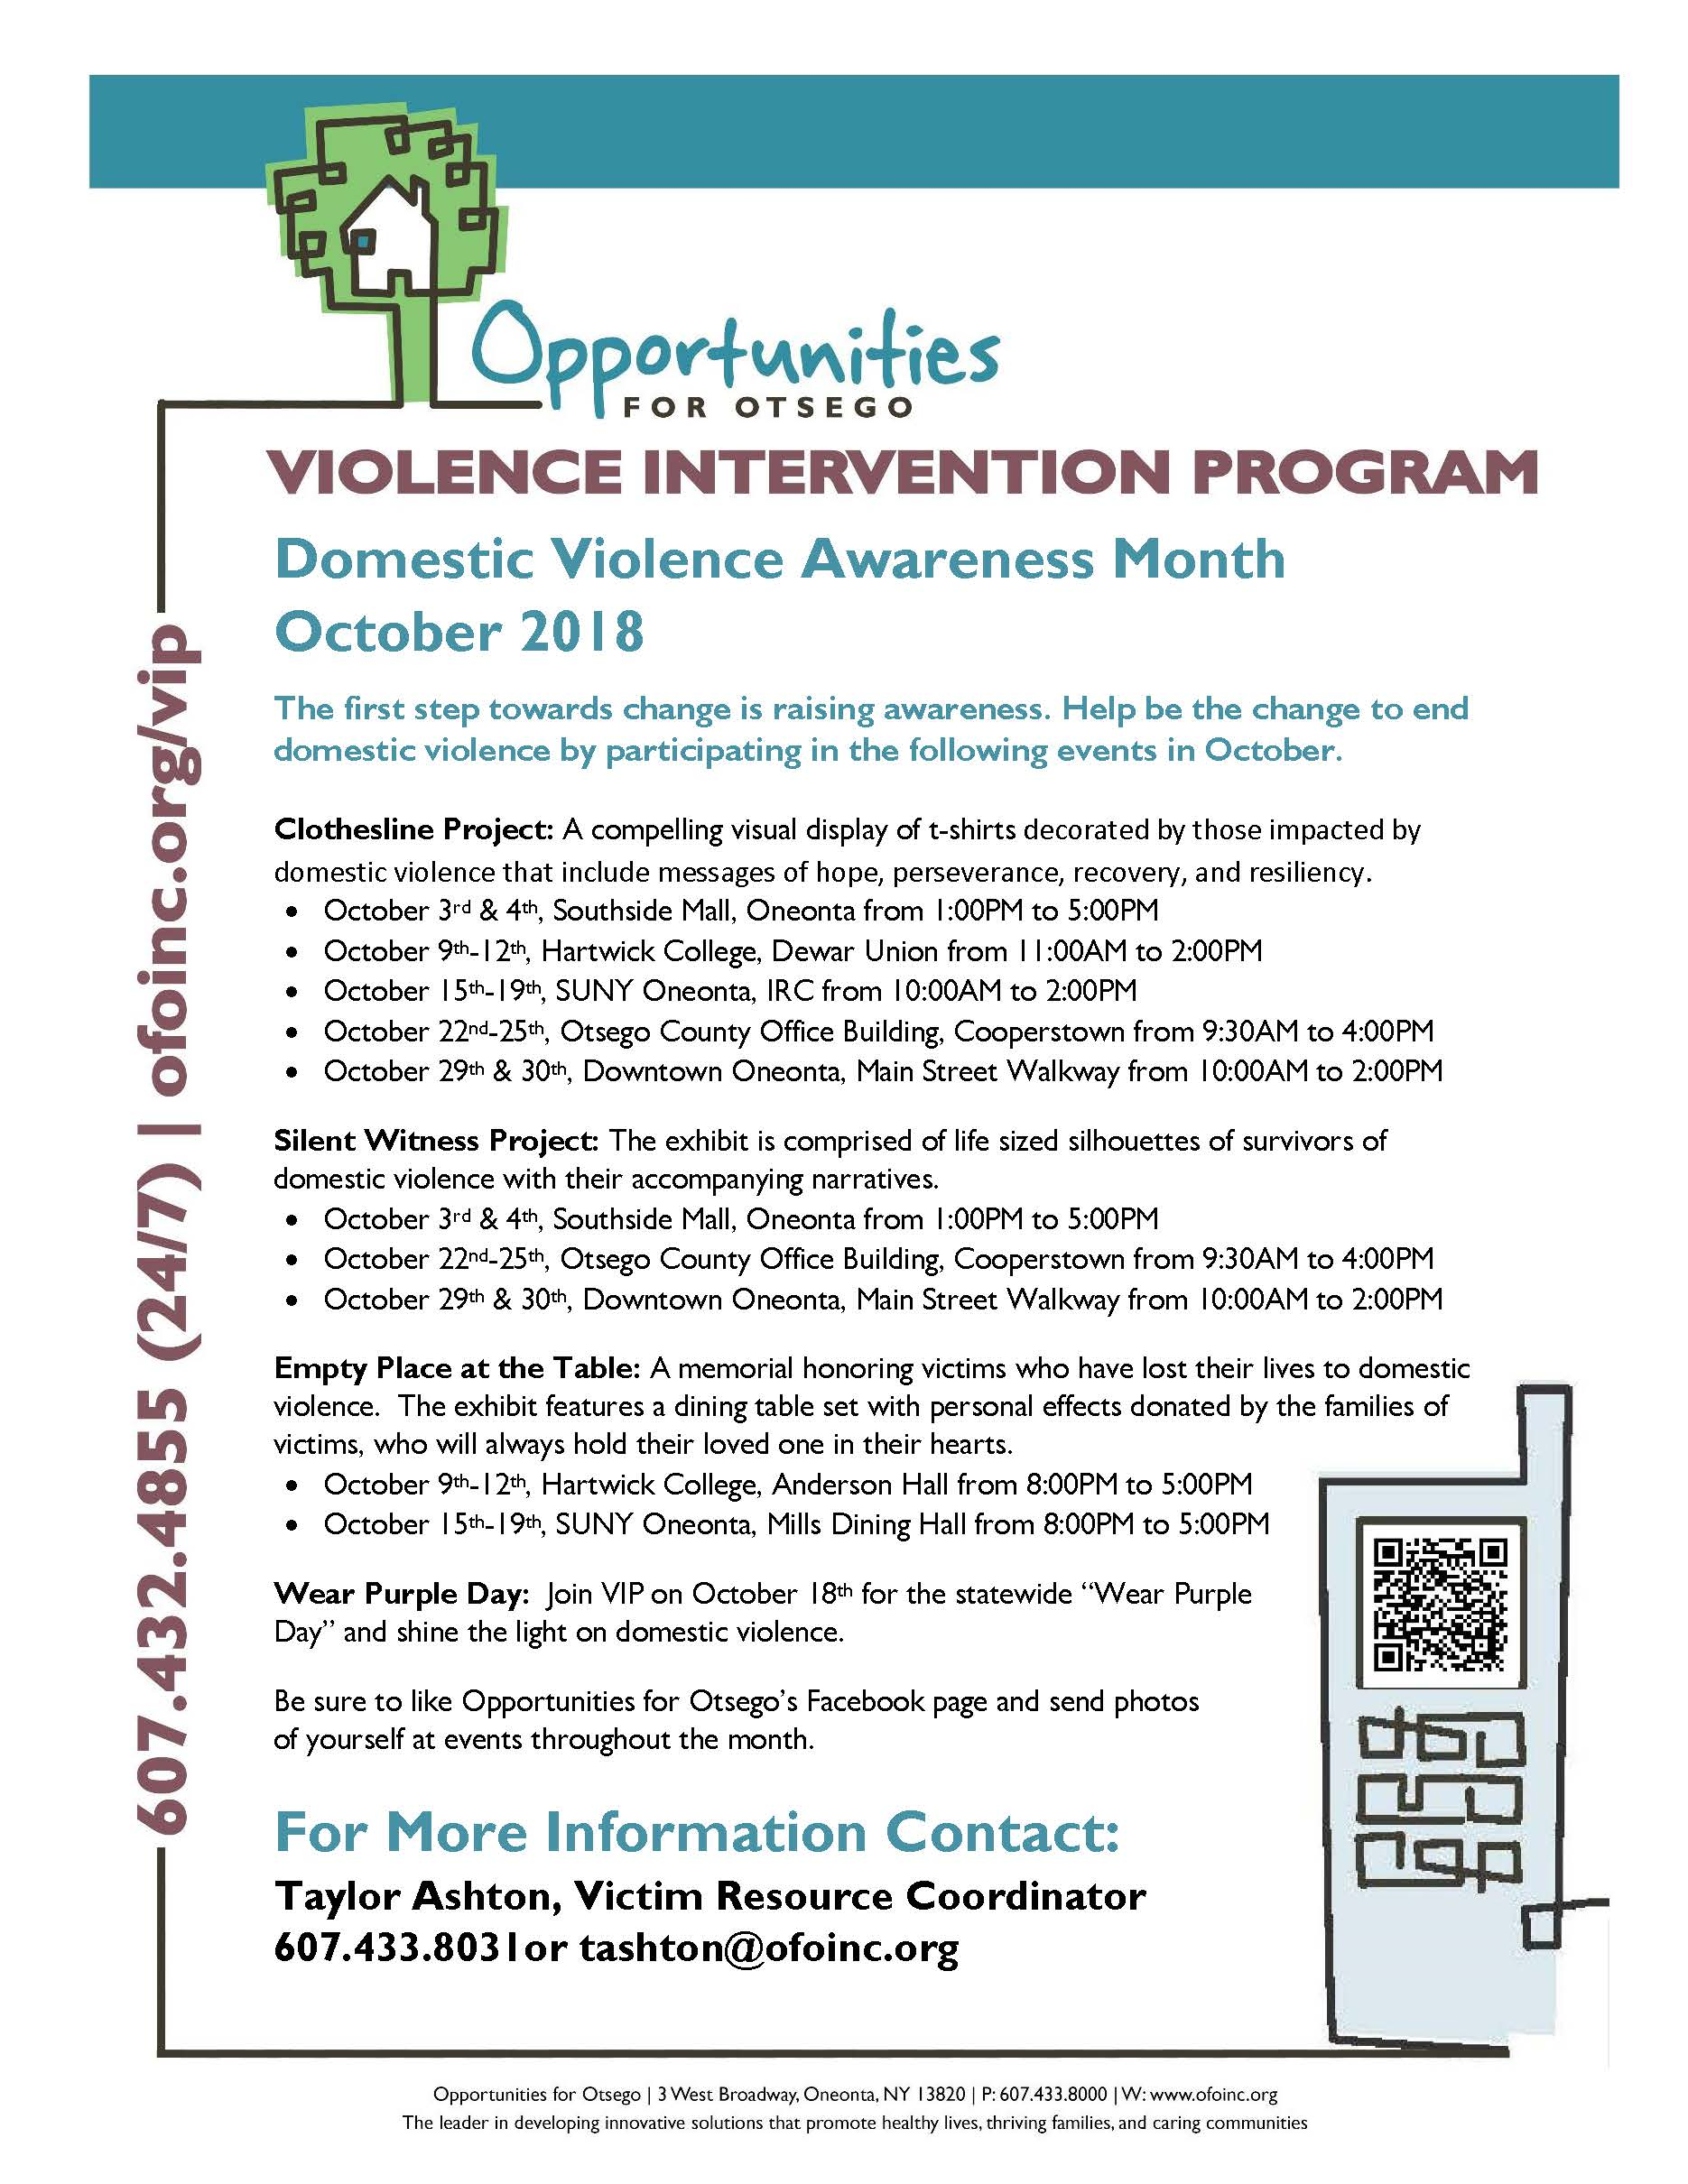 Domestic Violence Awareness Month flyer_2018_mm2.jpg